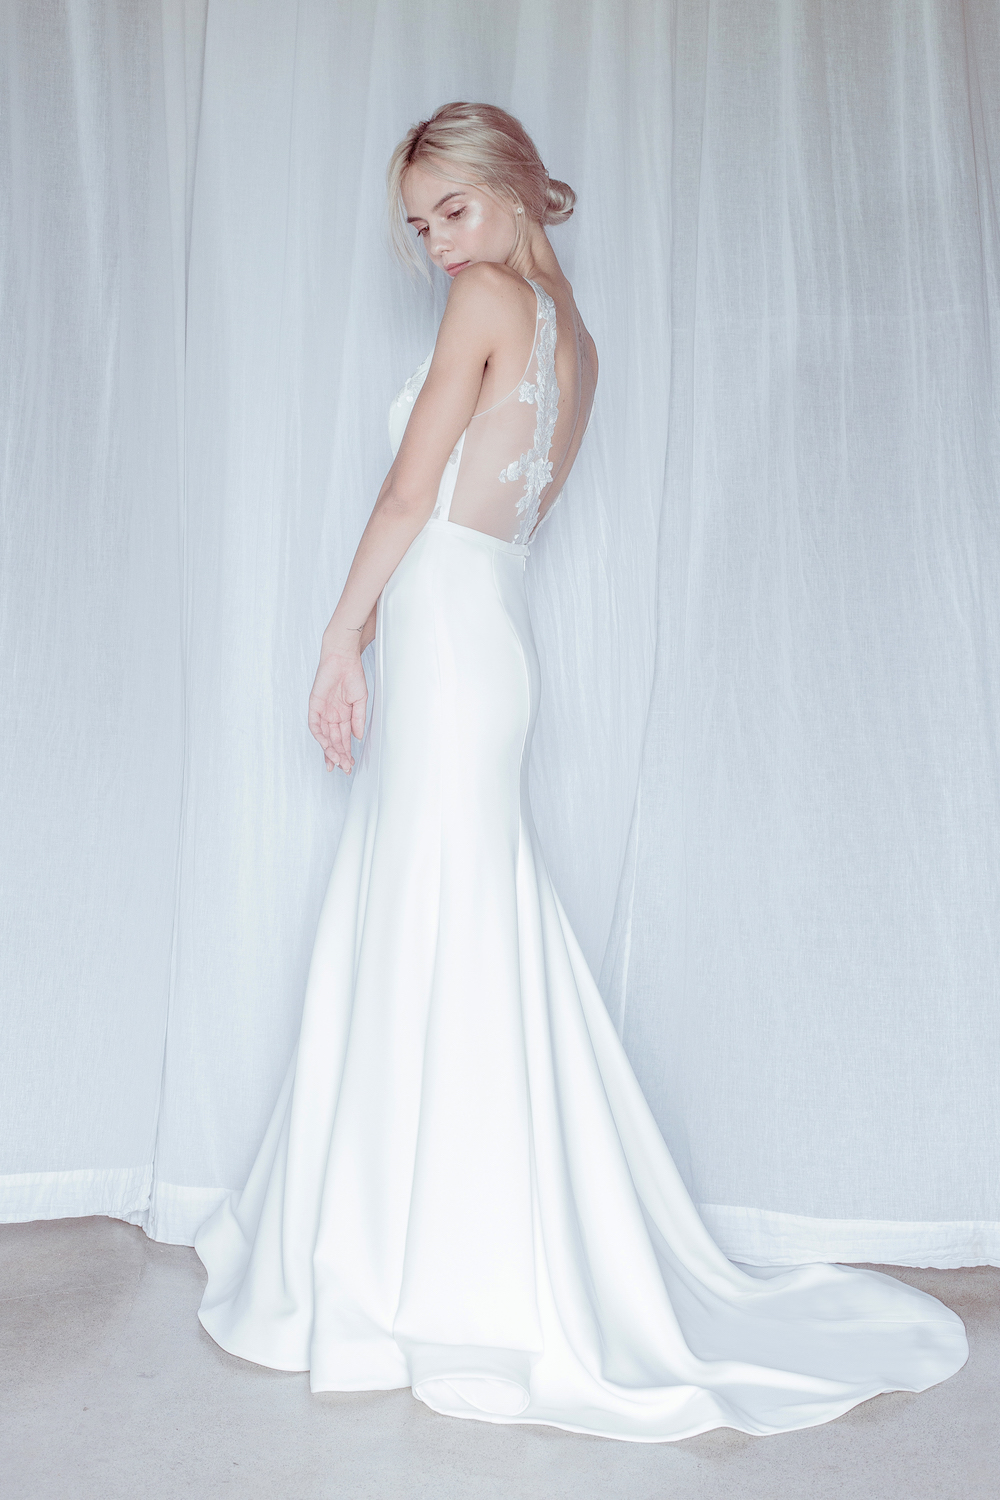 Hamilton Wedding Dress by Oui The Label 2018 Stolen Moments Bridal Collection featured on LOVE FIND CO.